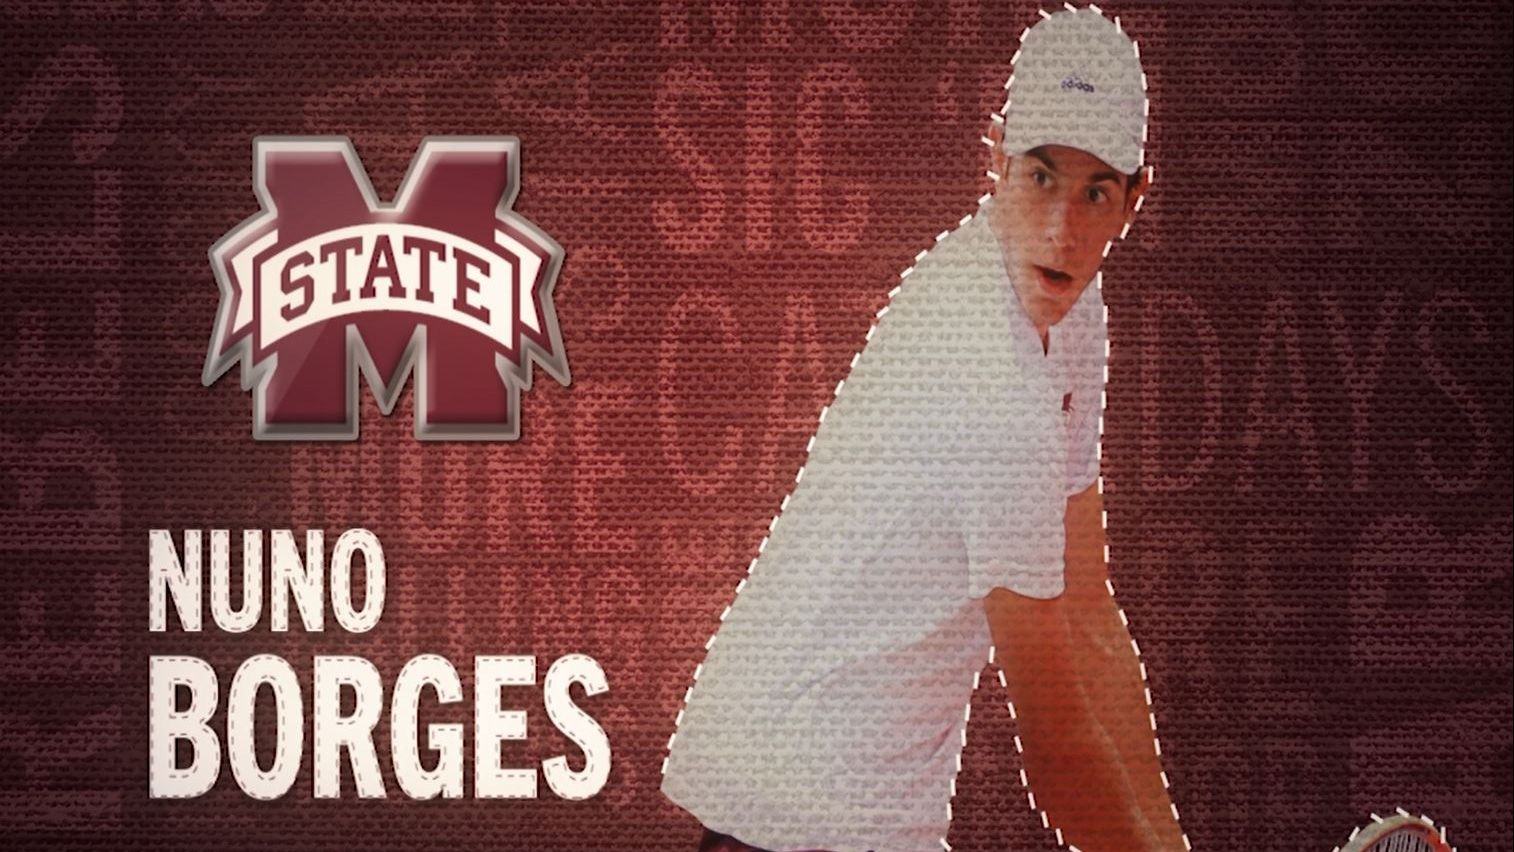 I am the SEC: Mississippi State's Nuno Borges